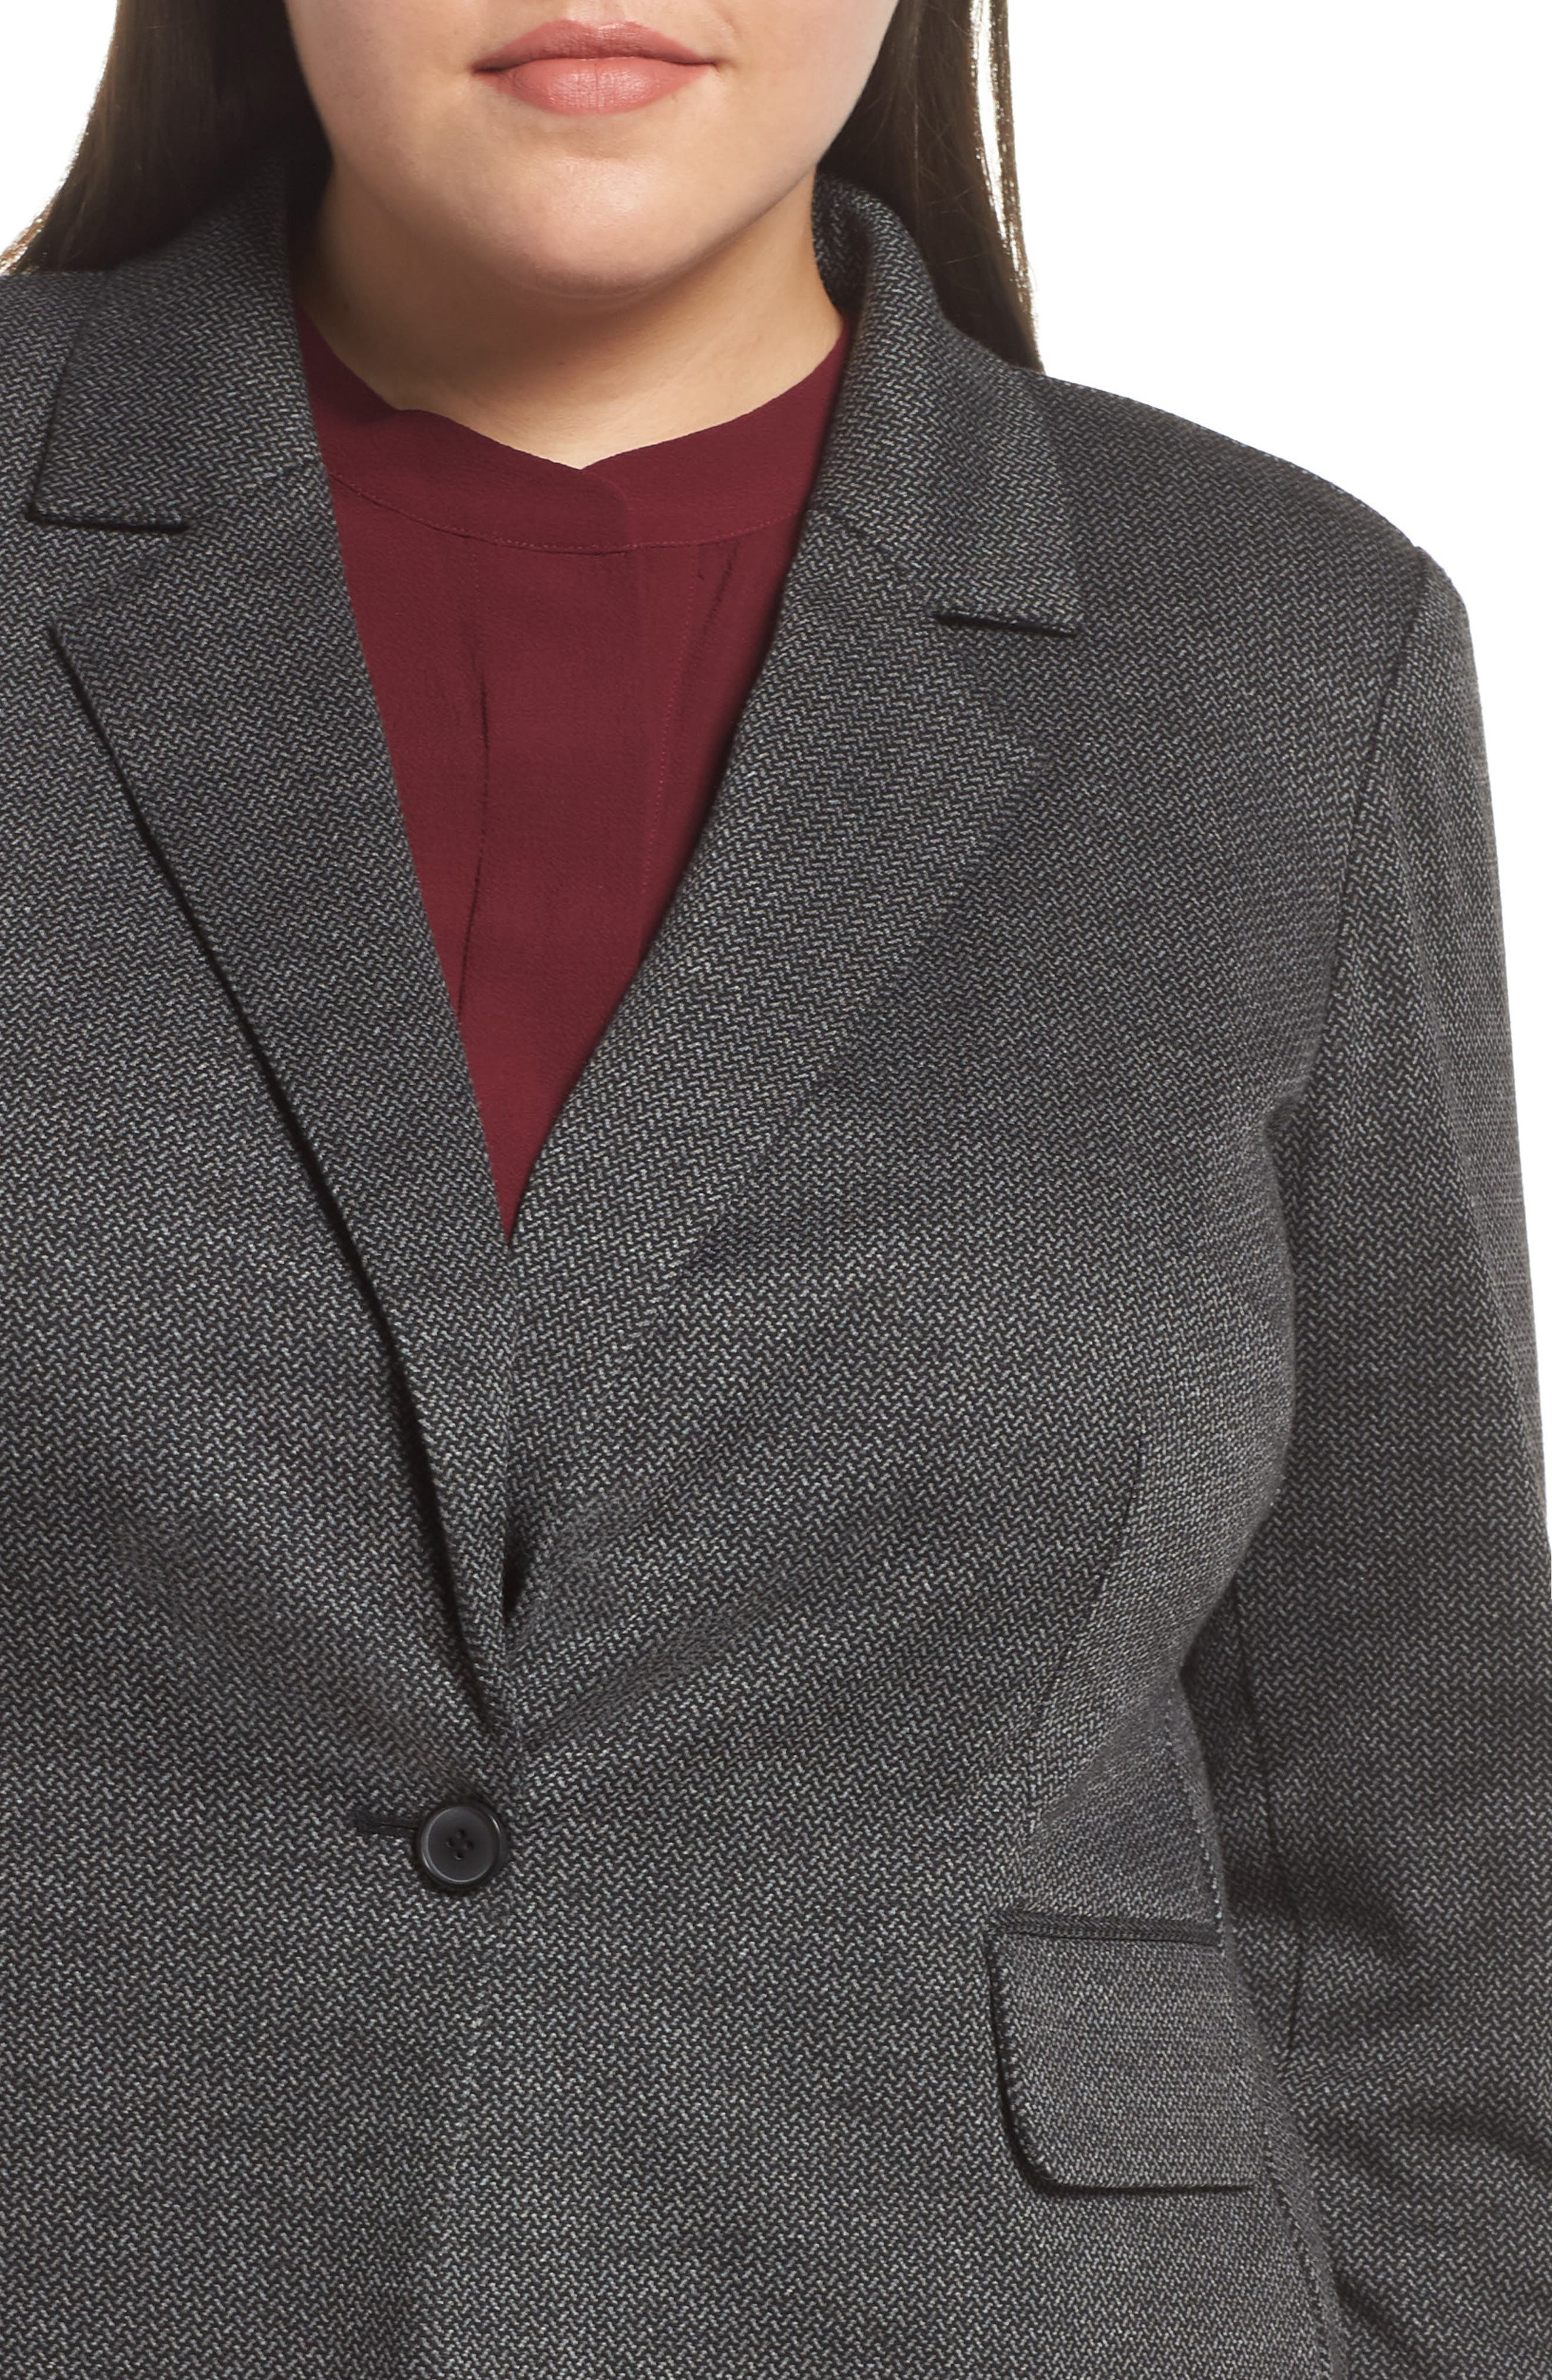 VINCE CAMUTO,                             Mélange Herringbone Single Button Blazer,                             Alternate thumbnail 4, color,                             RICH BLACK